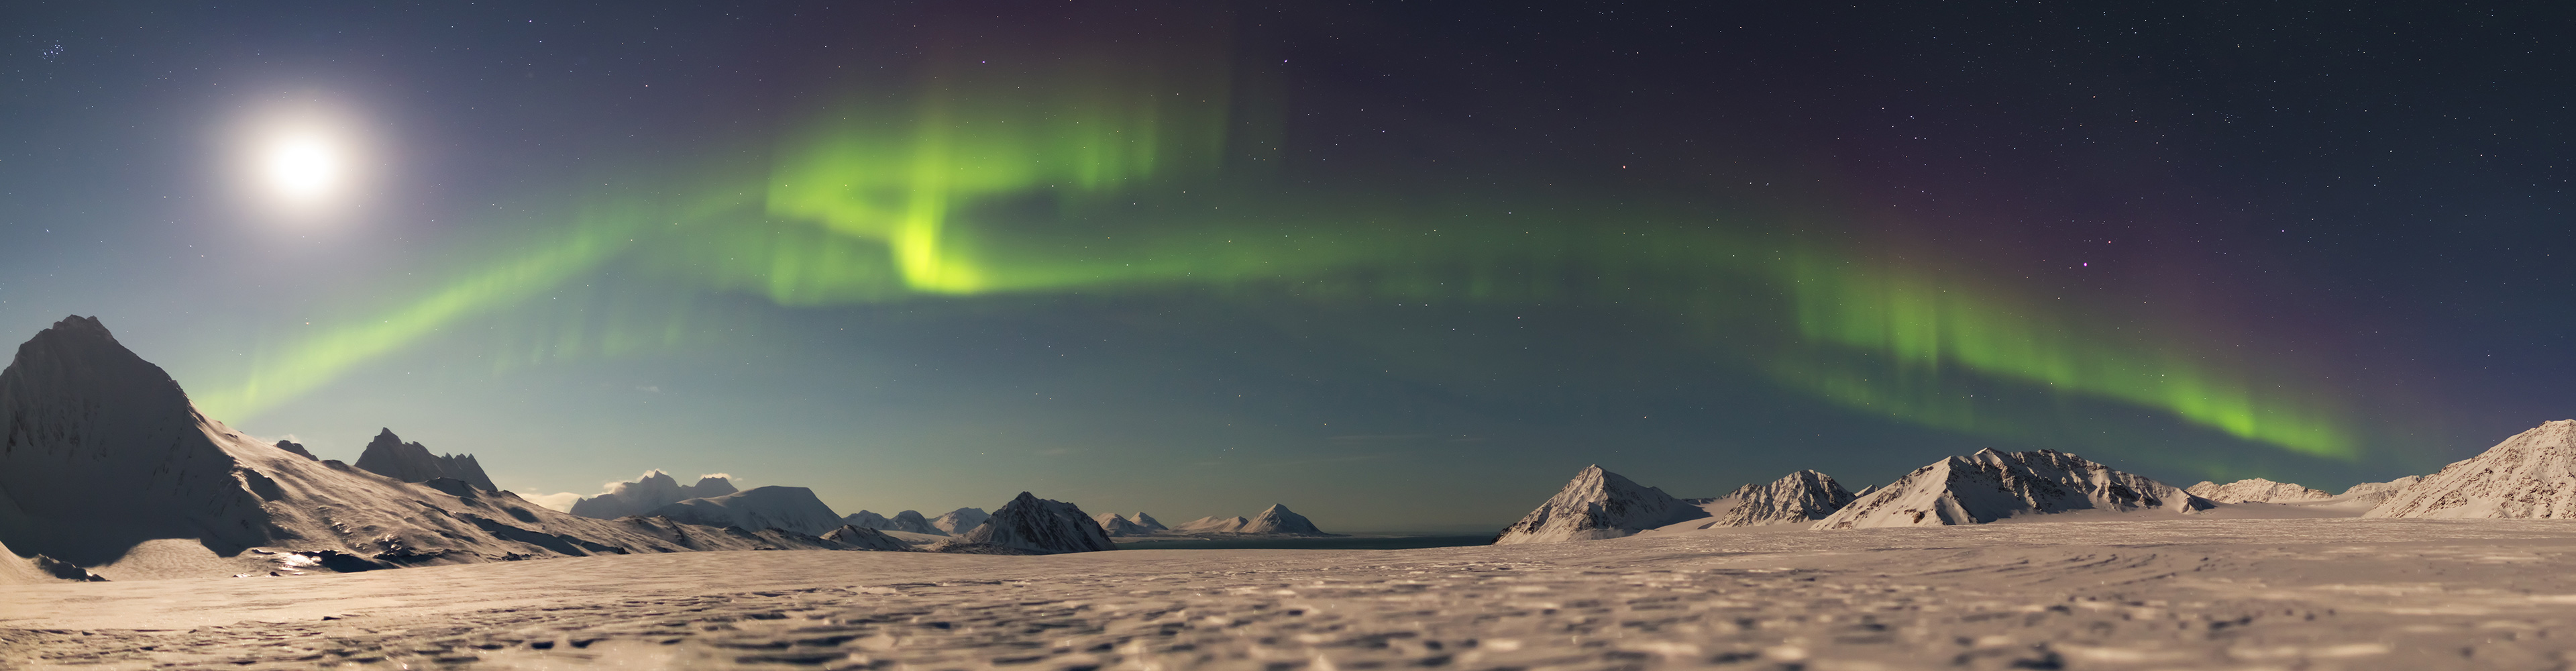 East Greenland and Iceland Northern Lights  #c65cbc3c-8486-4f59-98c4-049e89348037